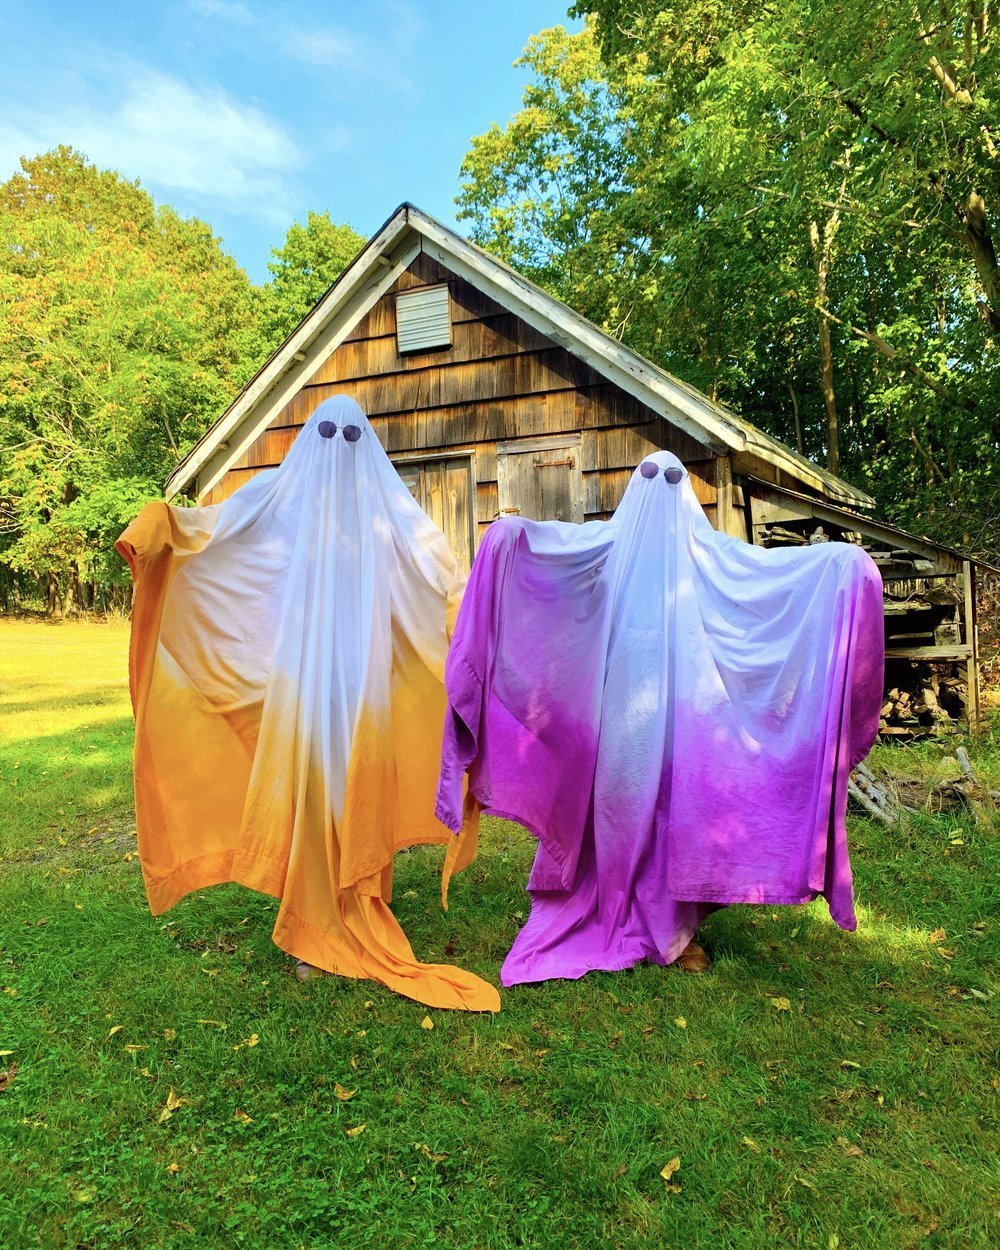 Dyeing Halloween Costumes With Rit Dye - Give new life to something old with a quick rit dip! #ritdye #dyeing #upcycle #oldclothes #gaycouple #recycle #halloween #halloweencostumes #dyeingclothes #howtodye #halloweendiy #ghost #ombre #gayghosts #homemadecostume #costumediy #couplescostume